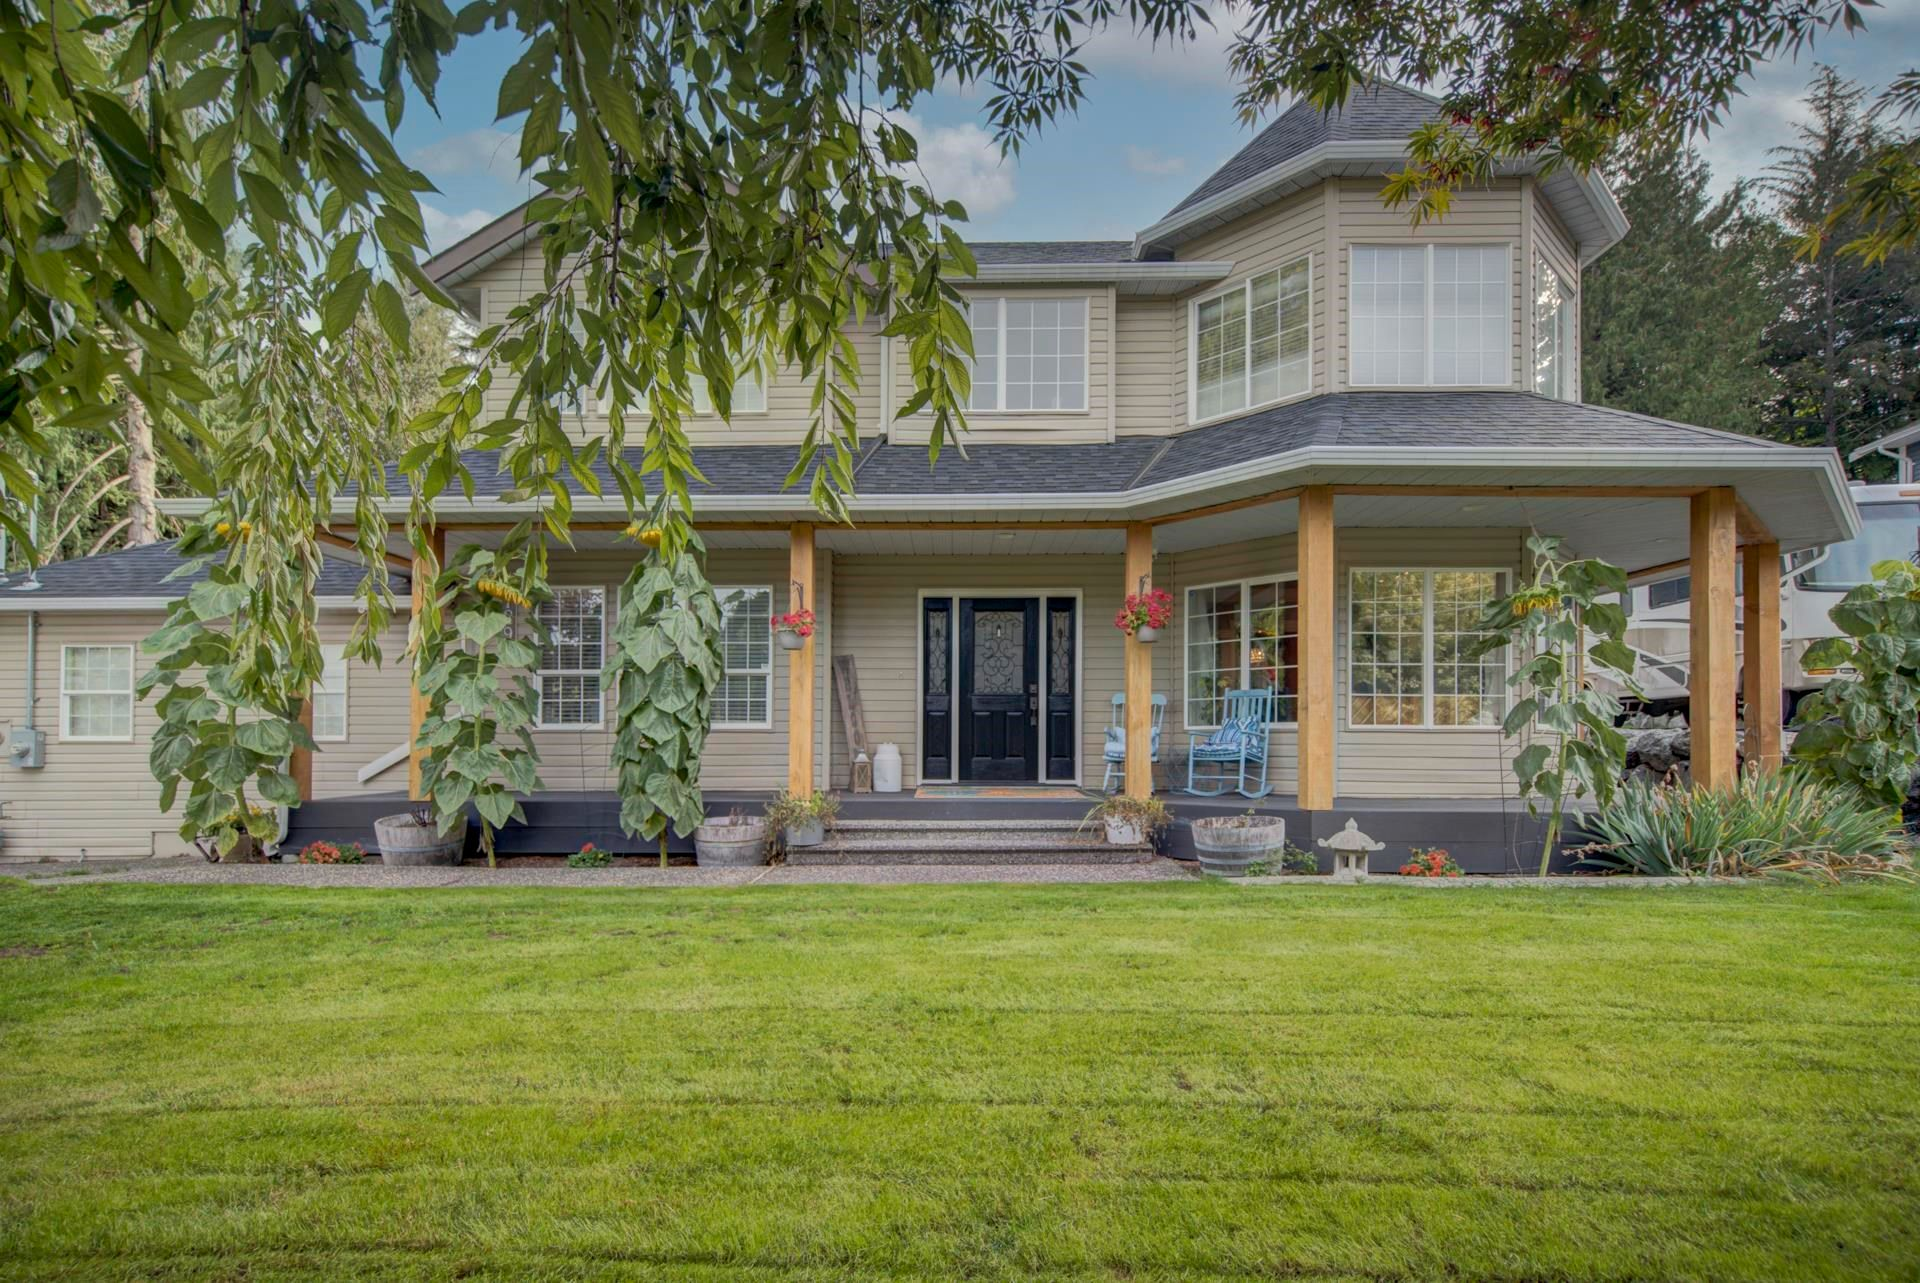 Main Photo: 7292 MARBLE HILL Road in Chilliwack: Eastern Hillsides House for sale : MLS®# R2617701